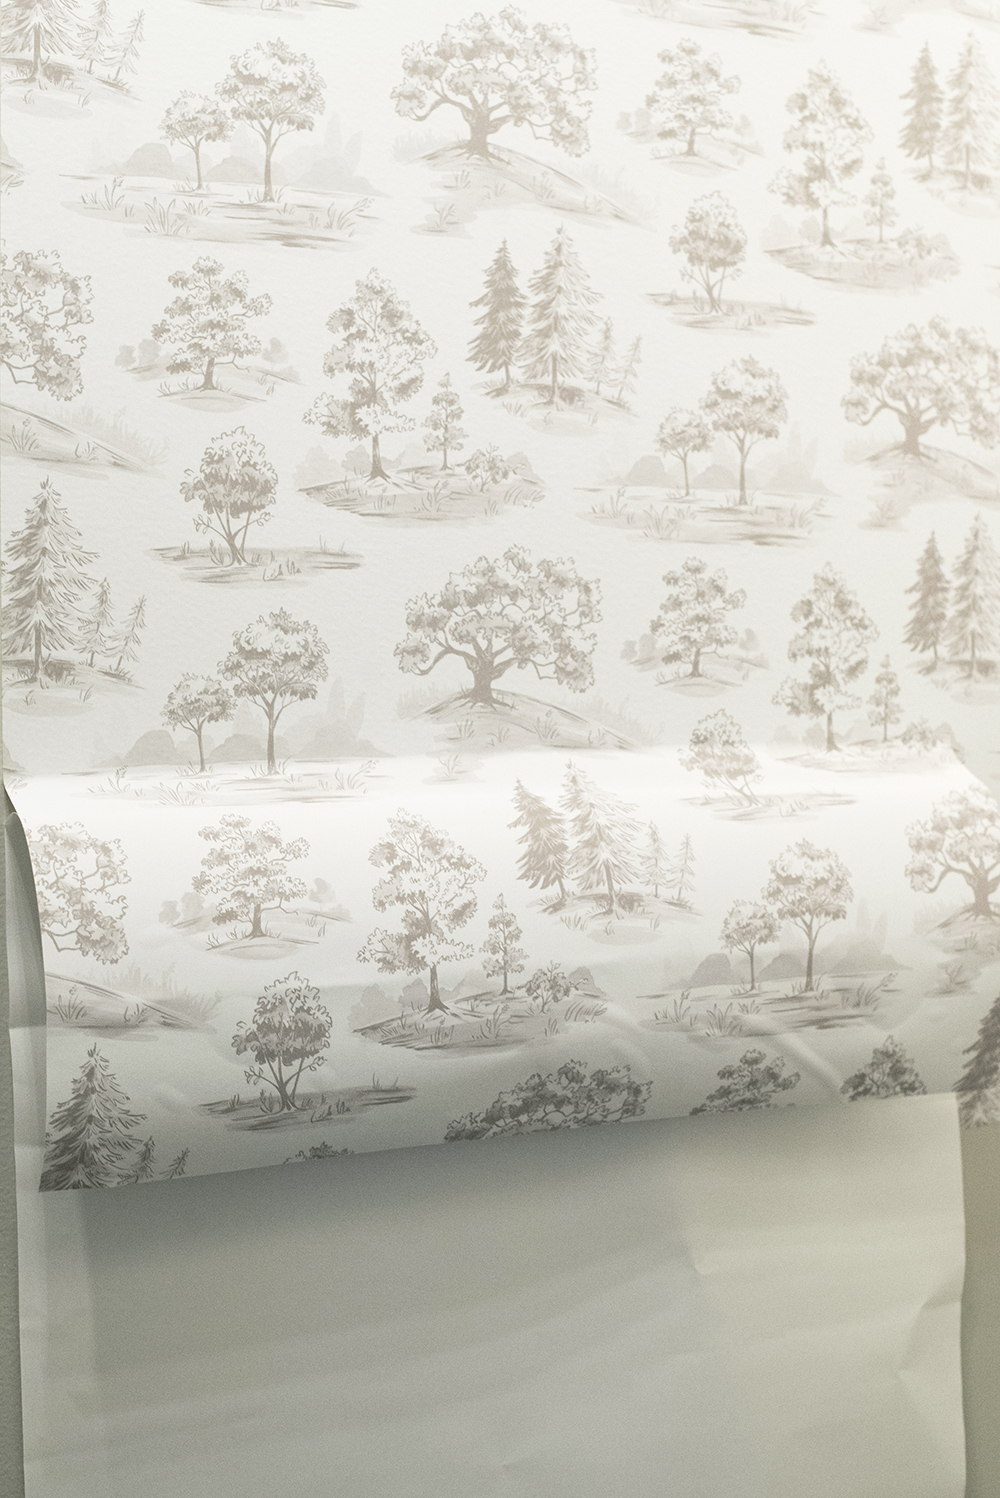 How to Install Peel-and-Stick Wallpaper - Room for Tuesday